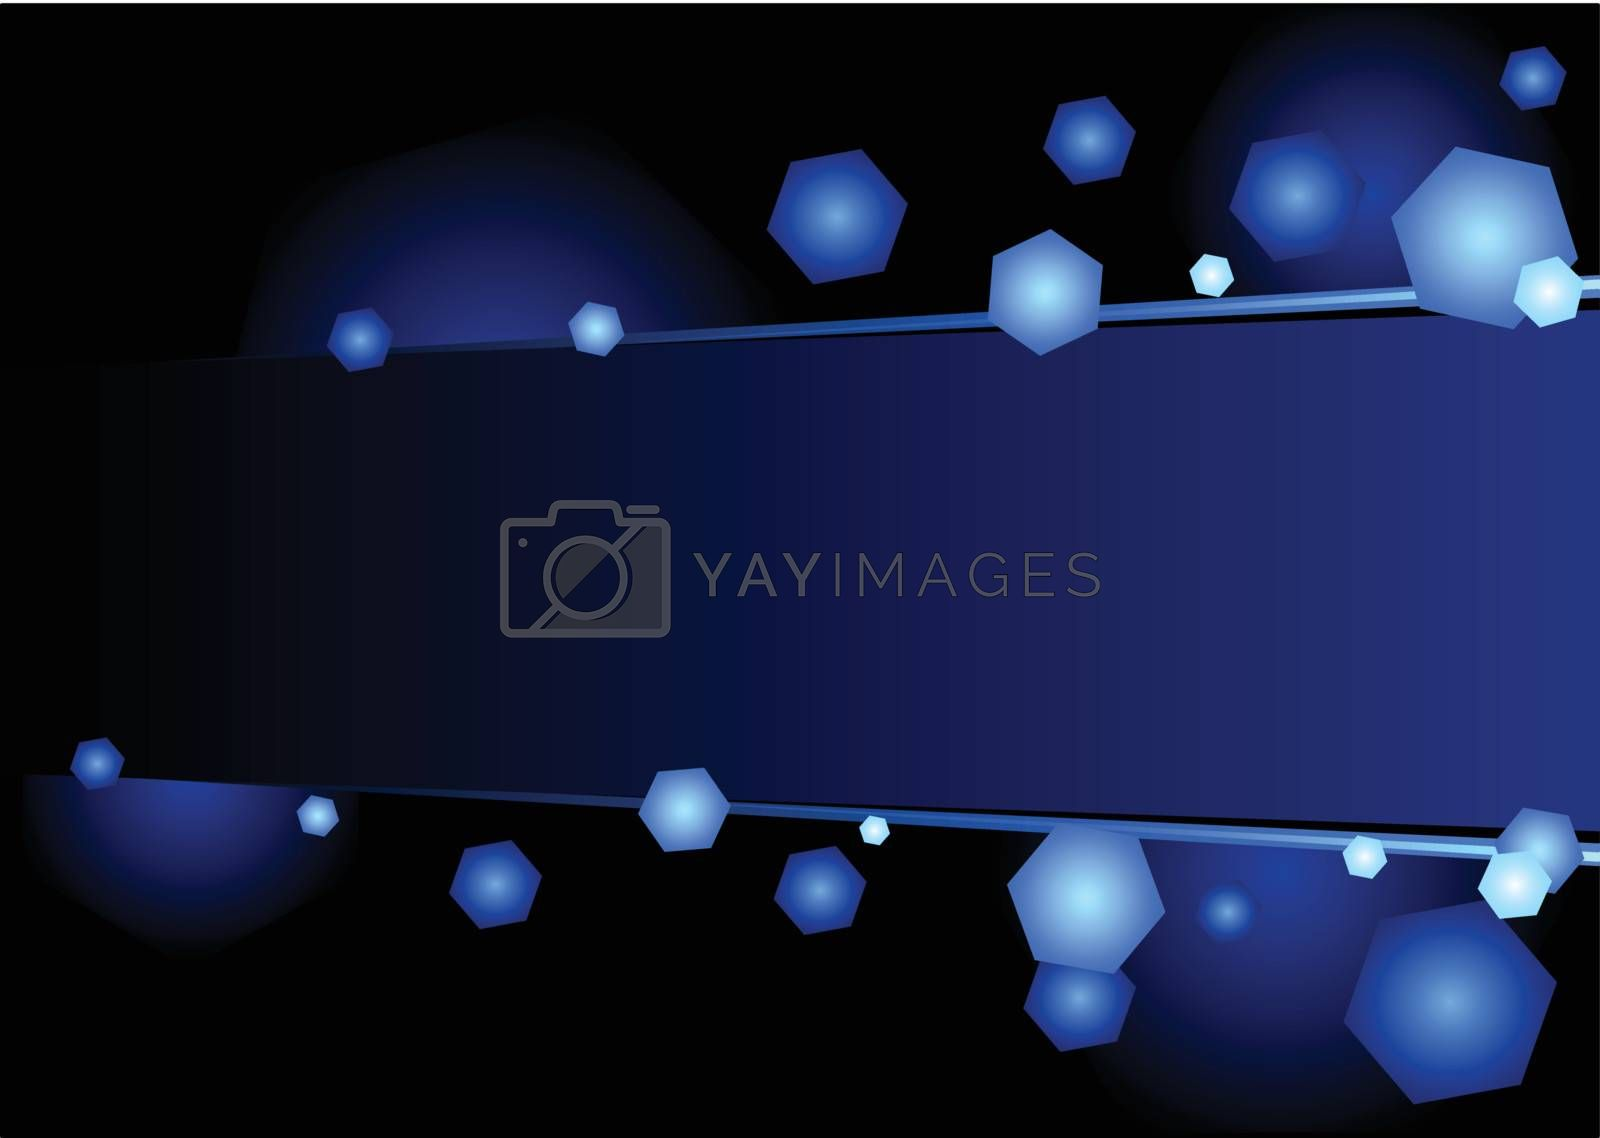 Royalty free image of Blue light by oxygen64